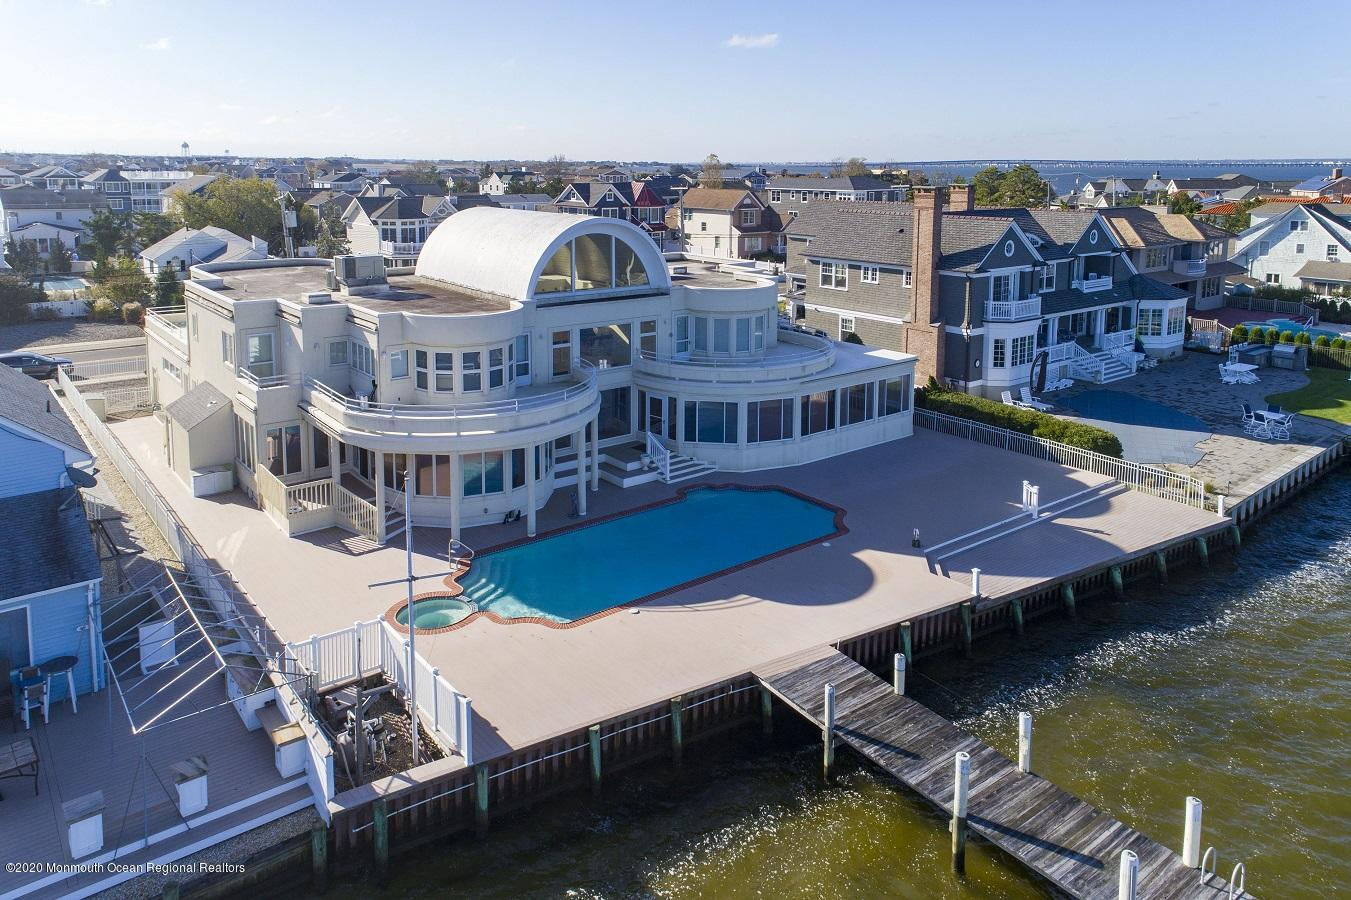 91 Pershing Boulevard, Lavallette, New Jersey 08735, 8 Bedrooms Bedrooms, ,8 BathroomsBathrooms,Single Family,For Sale,91 Pershing Boulevard,2,22039852